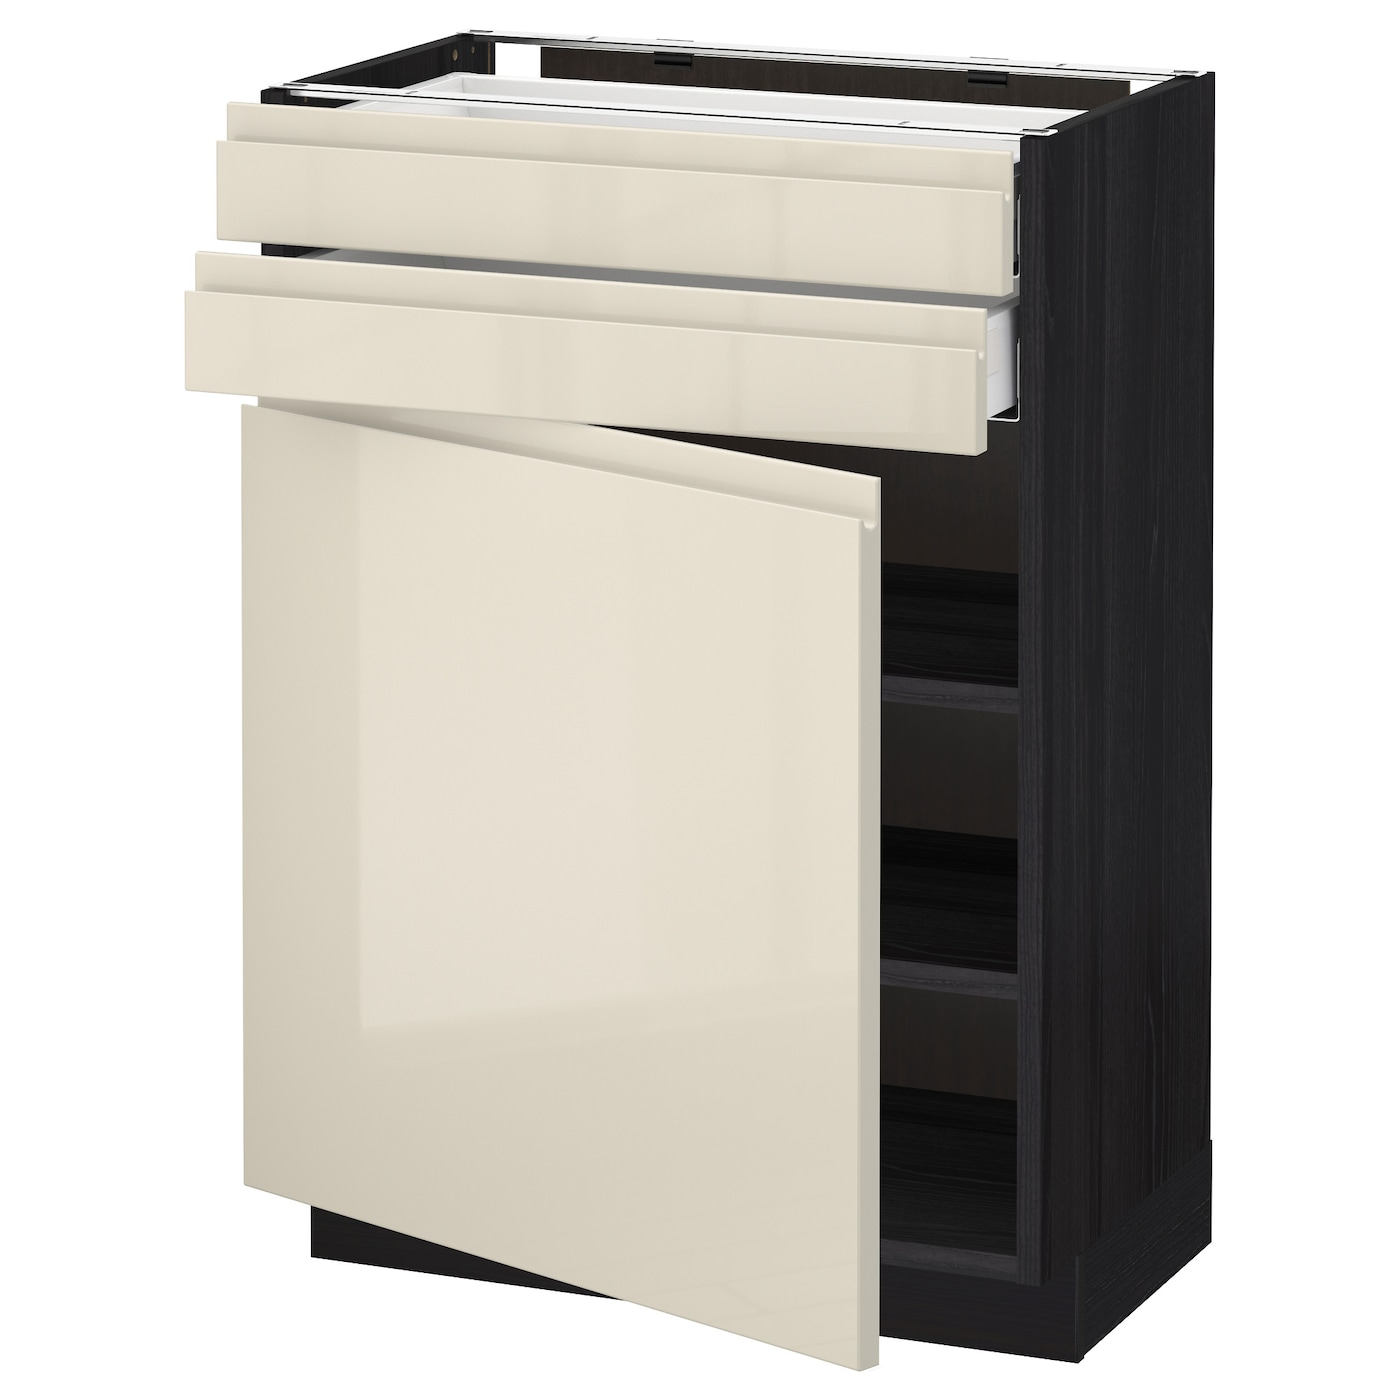 Metod Maximera Base Cabinet W Door 2 Drawers Black Voxtorp High Gloss Light Beige 60x37 Cm Ikea